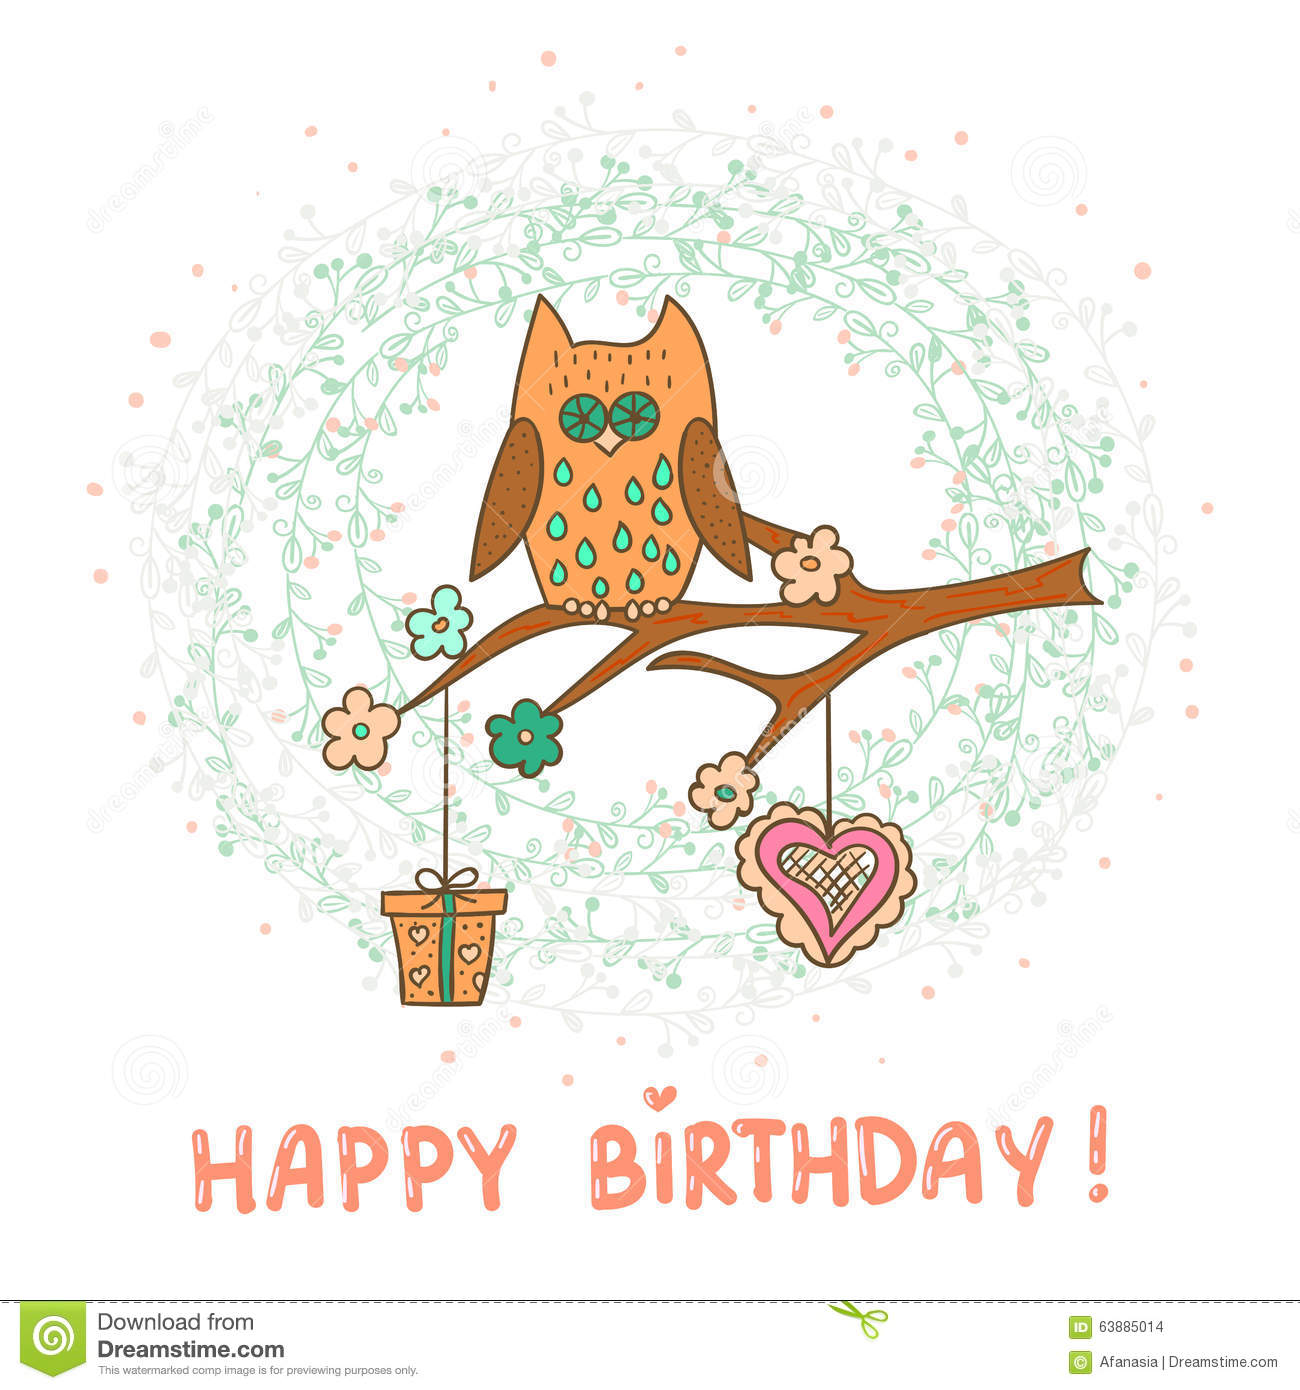 Happy Birthday Card Template Cute Cartoon Owl Vector – Free Downloadable Birthday Cards Templates